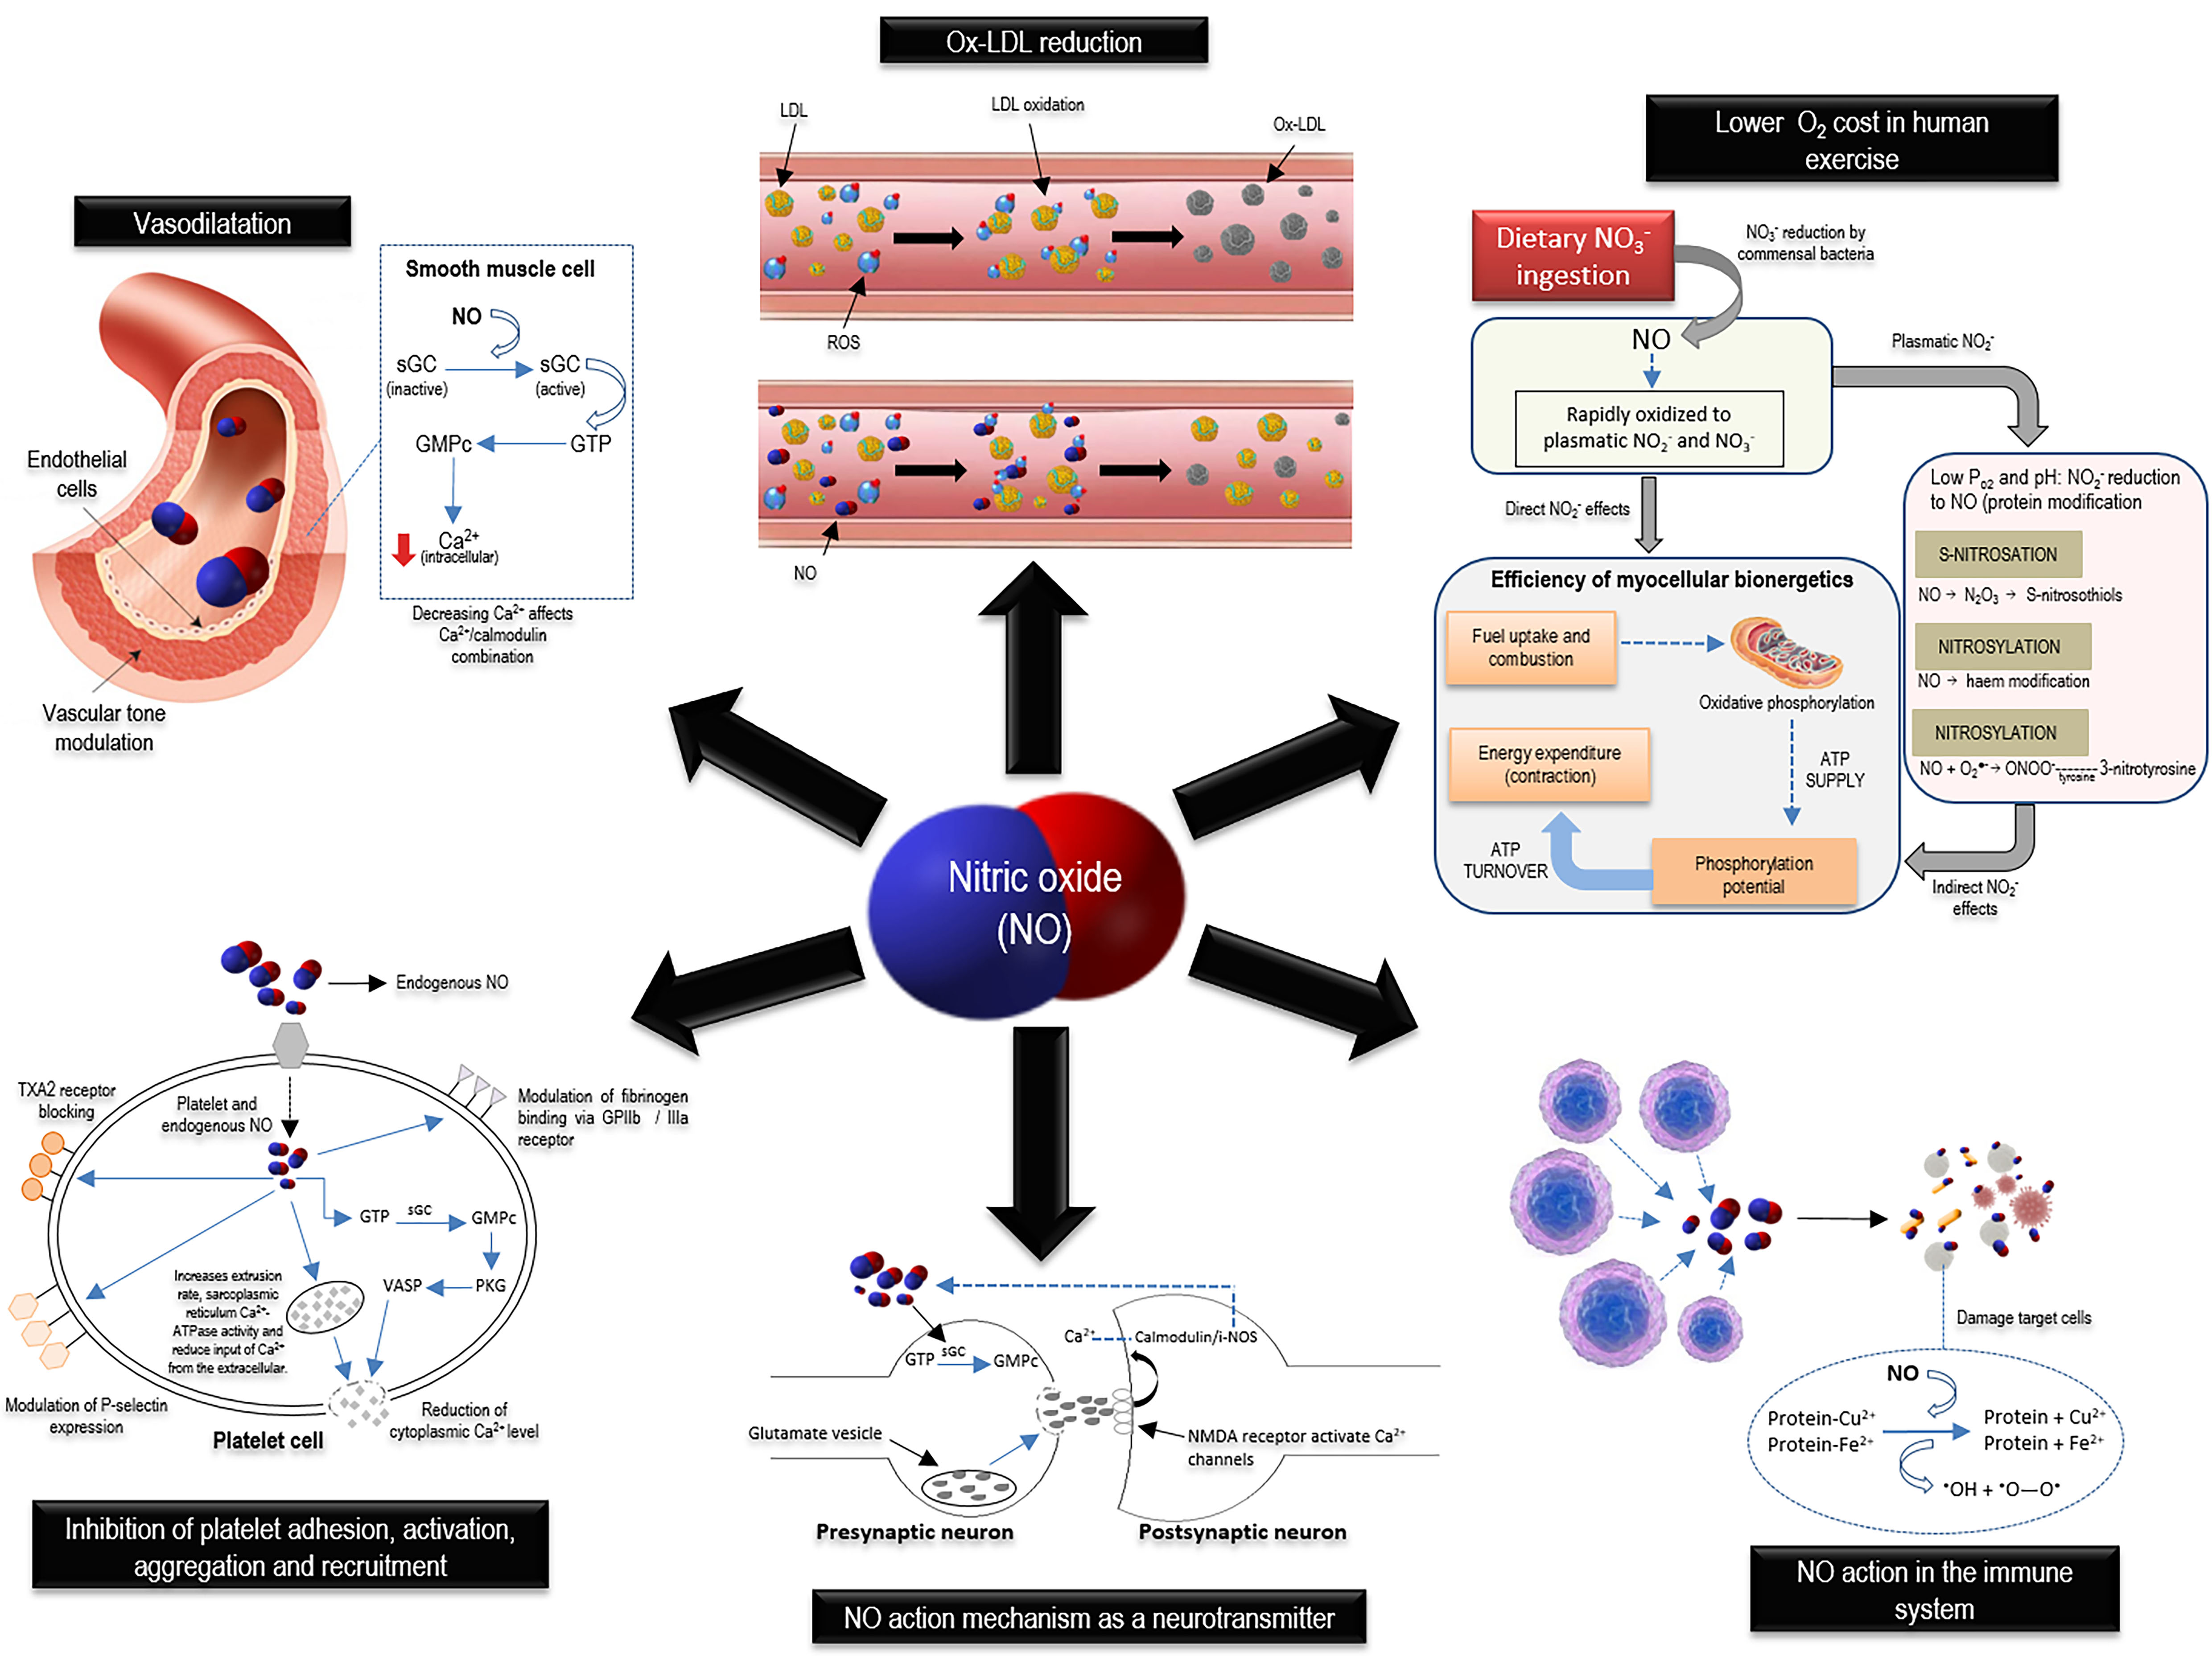 Figure 3. Physiological role of nitric oxide in smooth muscle tissue vascular tone maintenance, synaptic transmission, cellular defense, hemostatic-thrombotic balance, and mitochondrial function. ATP, adenosine triphosphate; ATPase, adenosine triphosphatase; Ca2+, calcium; Cu2+, copper; Fe2+, ferrous iron; GMPc, guanosine monophosphate cyclic; GPIIb, glycoprotein IIb; GPIIIa, glycoprotein IIIa; GTP, guanosine-5'-triphosphate; iNOS, inducible nitric oxide synthase; LDL, low-density lipoprotein; N2O3, dinitrogen trioxide; NMDA, N-methyl-D-aspartate; NO, nitric oxide; NO2-, nitrite; NO3-, nitrate; O2, oxygen; ONOO-, peroxynitrite; Ox-LDL, oxidized low-density lipoprotein; PKG, protein kinase G; PO2, pressure of oxygen; ROS, reactive oxygen species; sGC, soluble guanylate cyclase; TXA2, thromboxane A2; VASP, vasodilator-stimulated phosphoprotein.